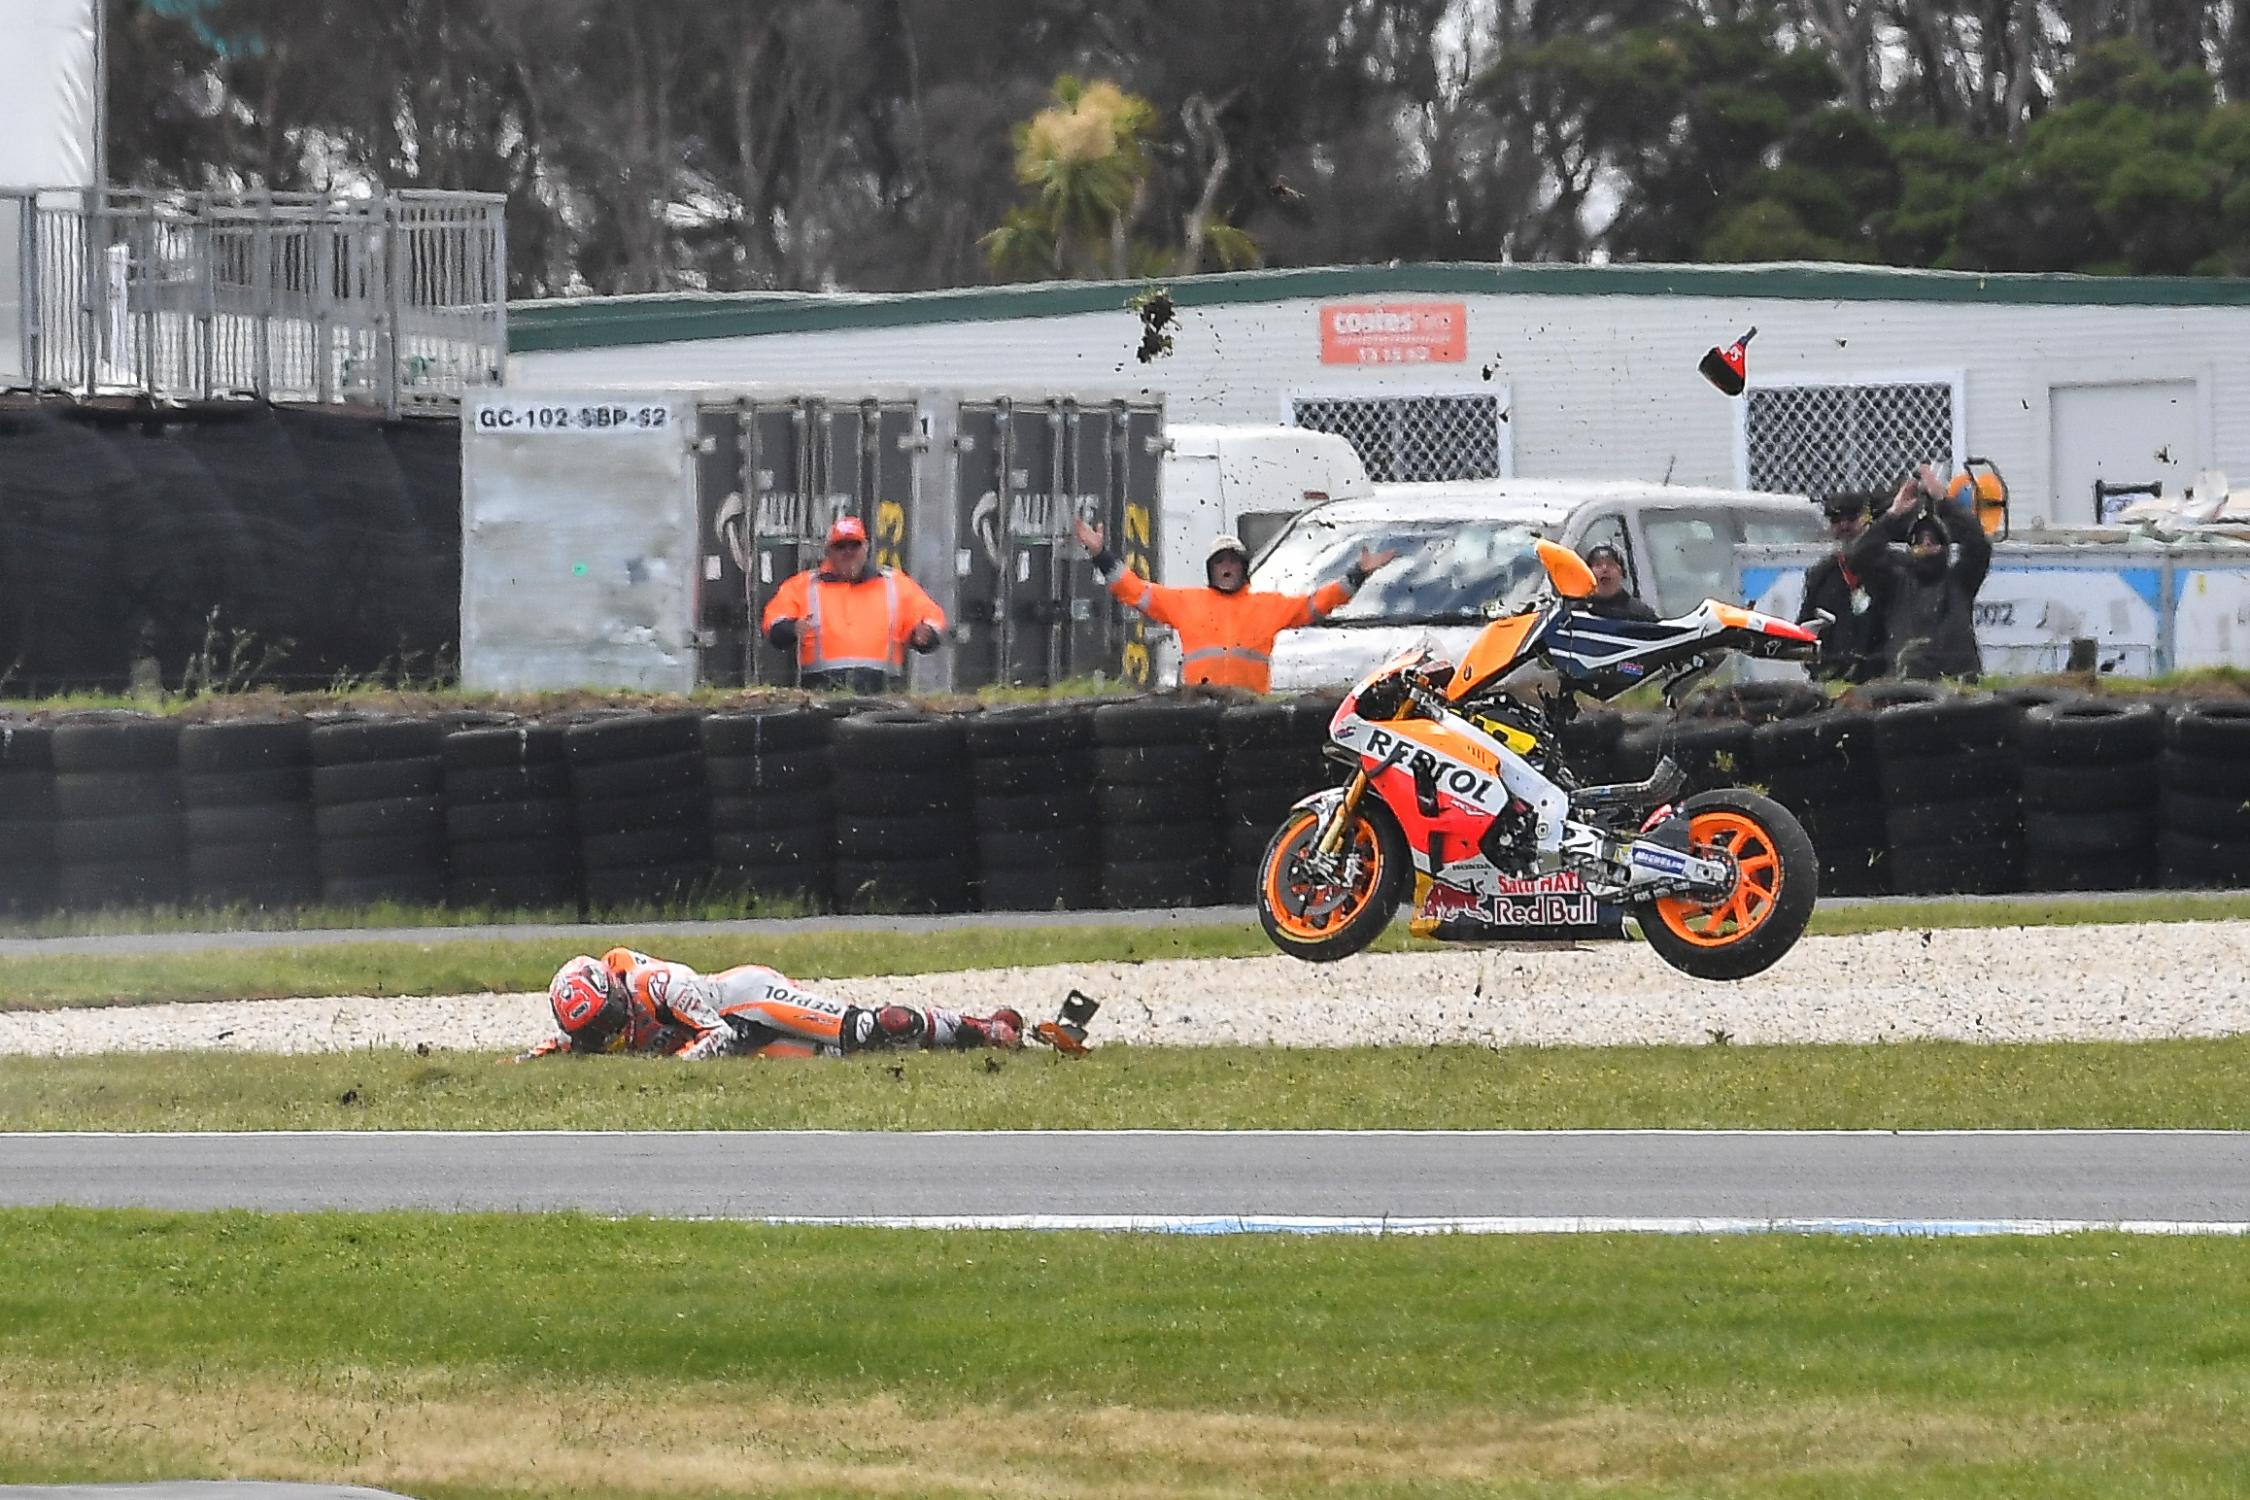 [GP] Philip Island 93-marc-marquez-esplg5_4133.gallery_full_top_fullscreen